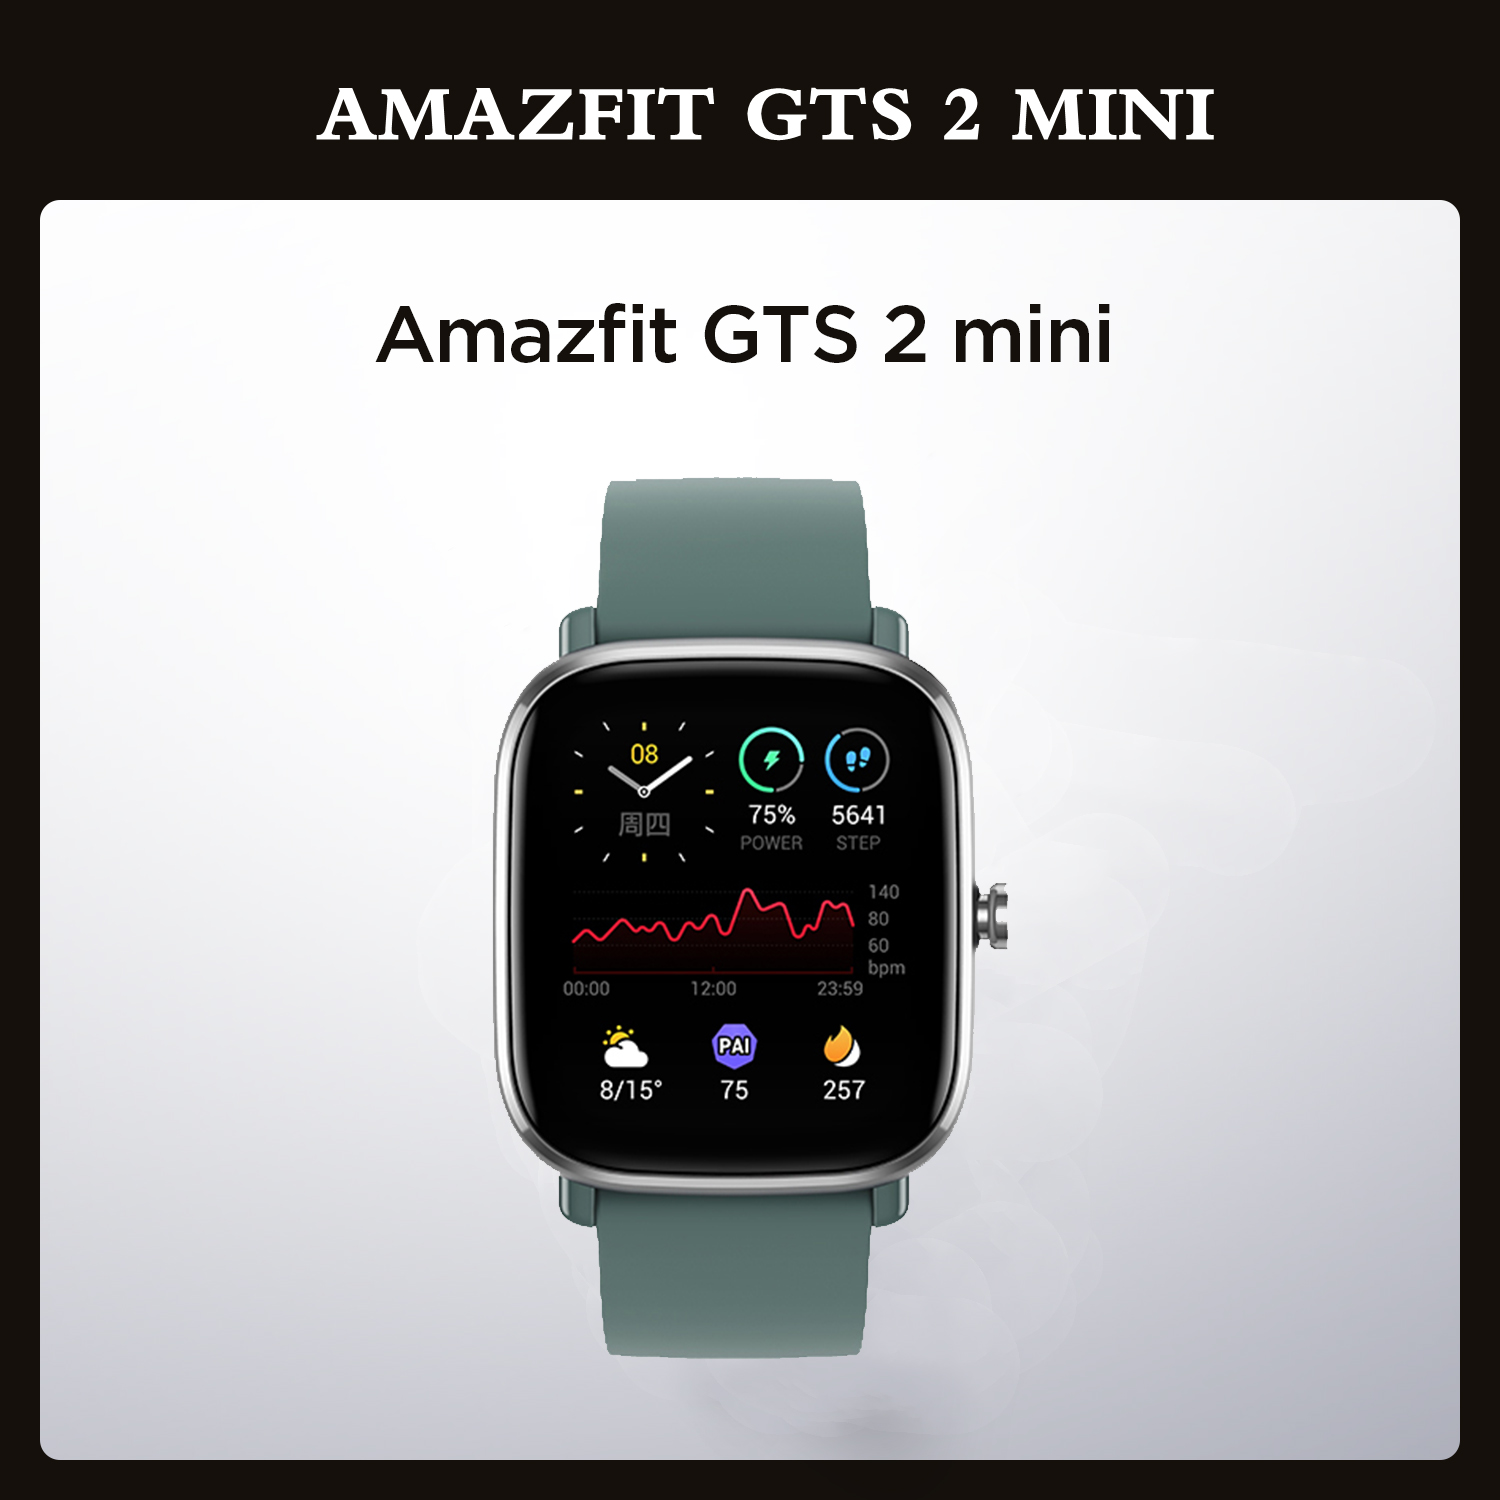 """Permalink to Global Version Amazfit GTS 2 Mini GPS Smartwatch 1.55"""" 301 ppi AMOLED Display 70 Sports Modes Smart Watch For Android iOS Phone"""